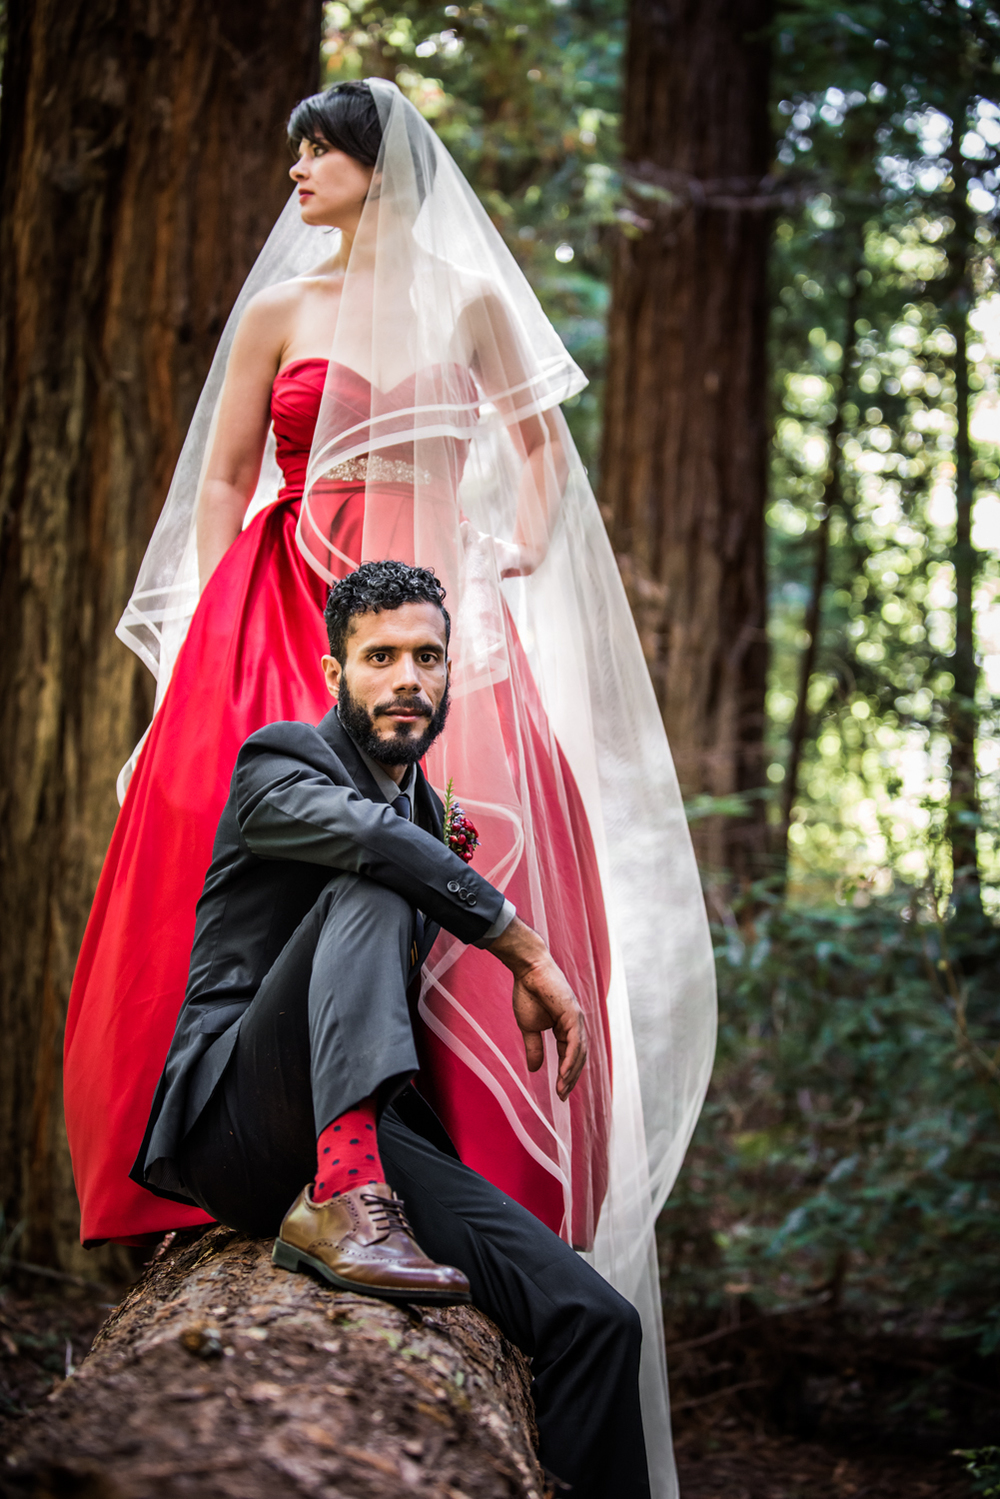 mendocino_redweddingdress_redwoods_realwedding